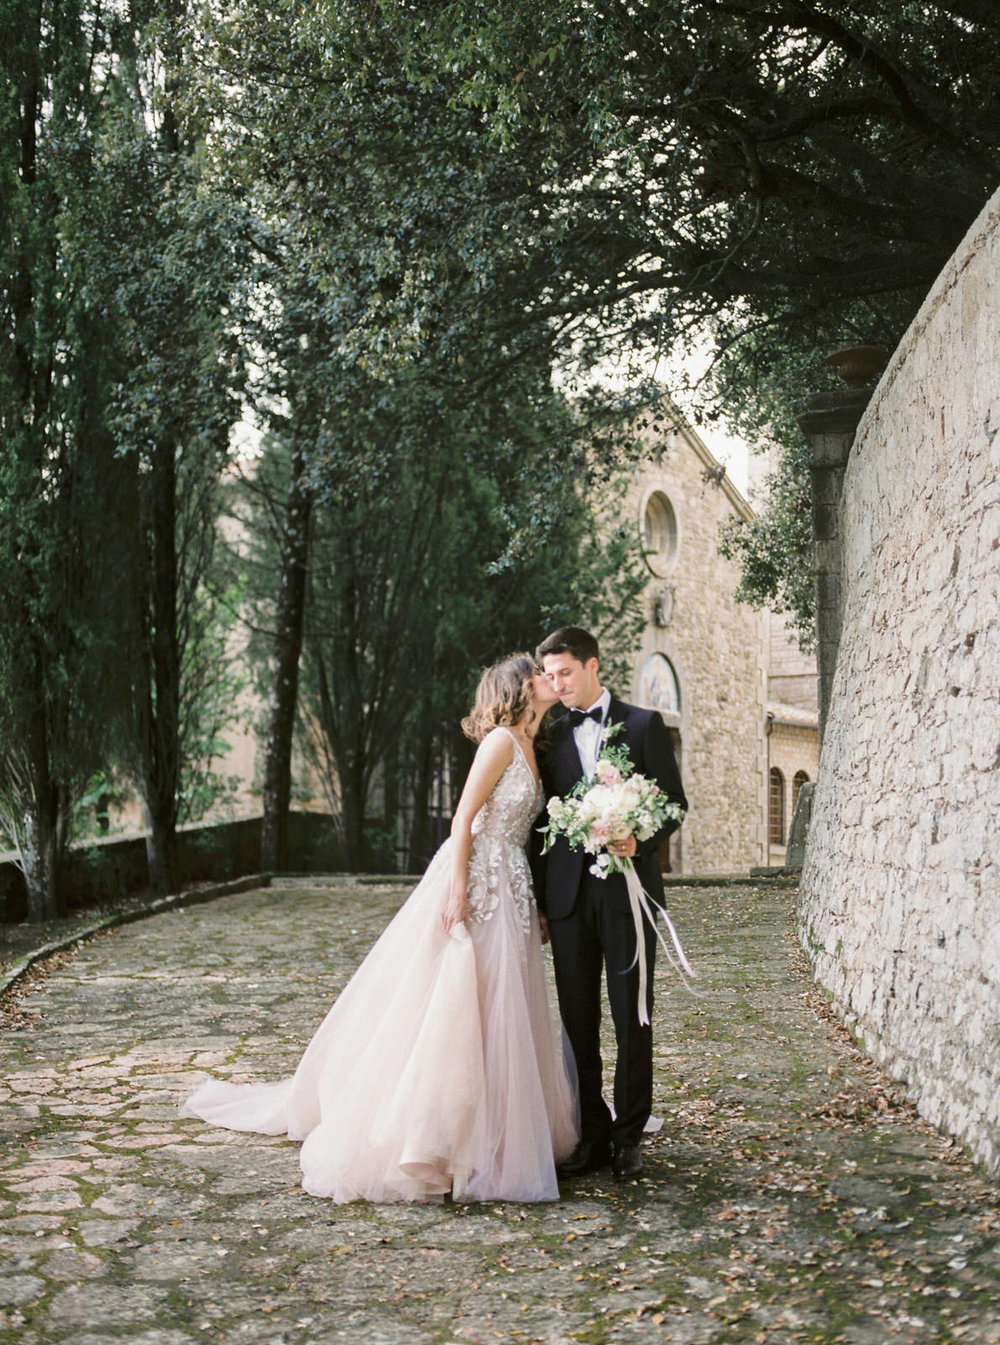 Italy Destination Film Wedding Photography  - CHYMO & MORE Photo